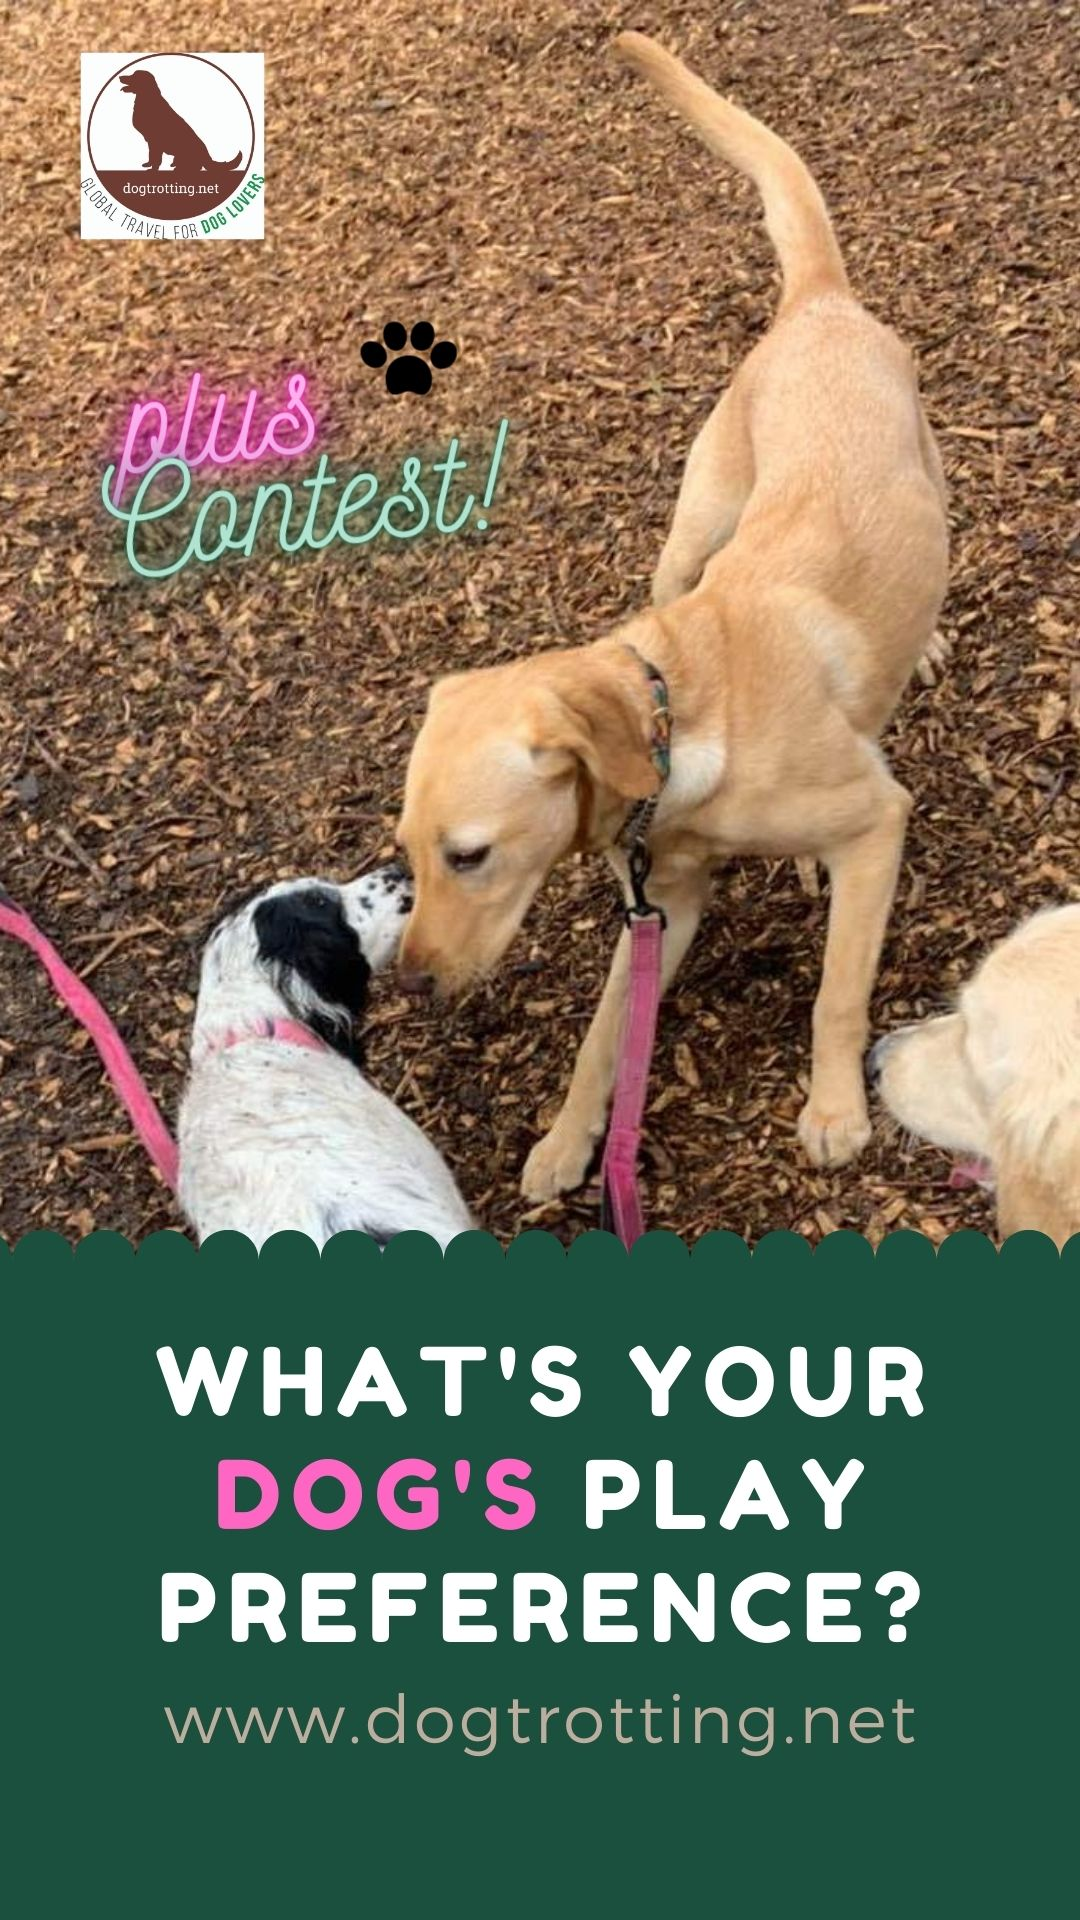 two dogs playing: what's your dog's play preference?